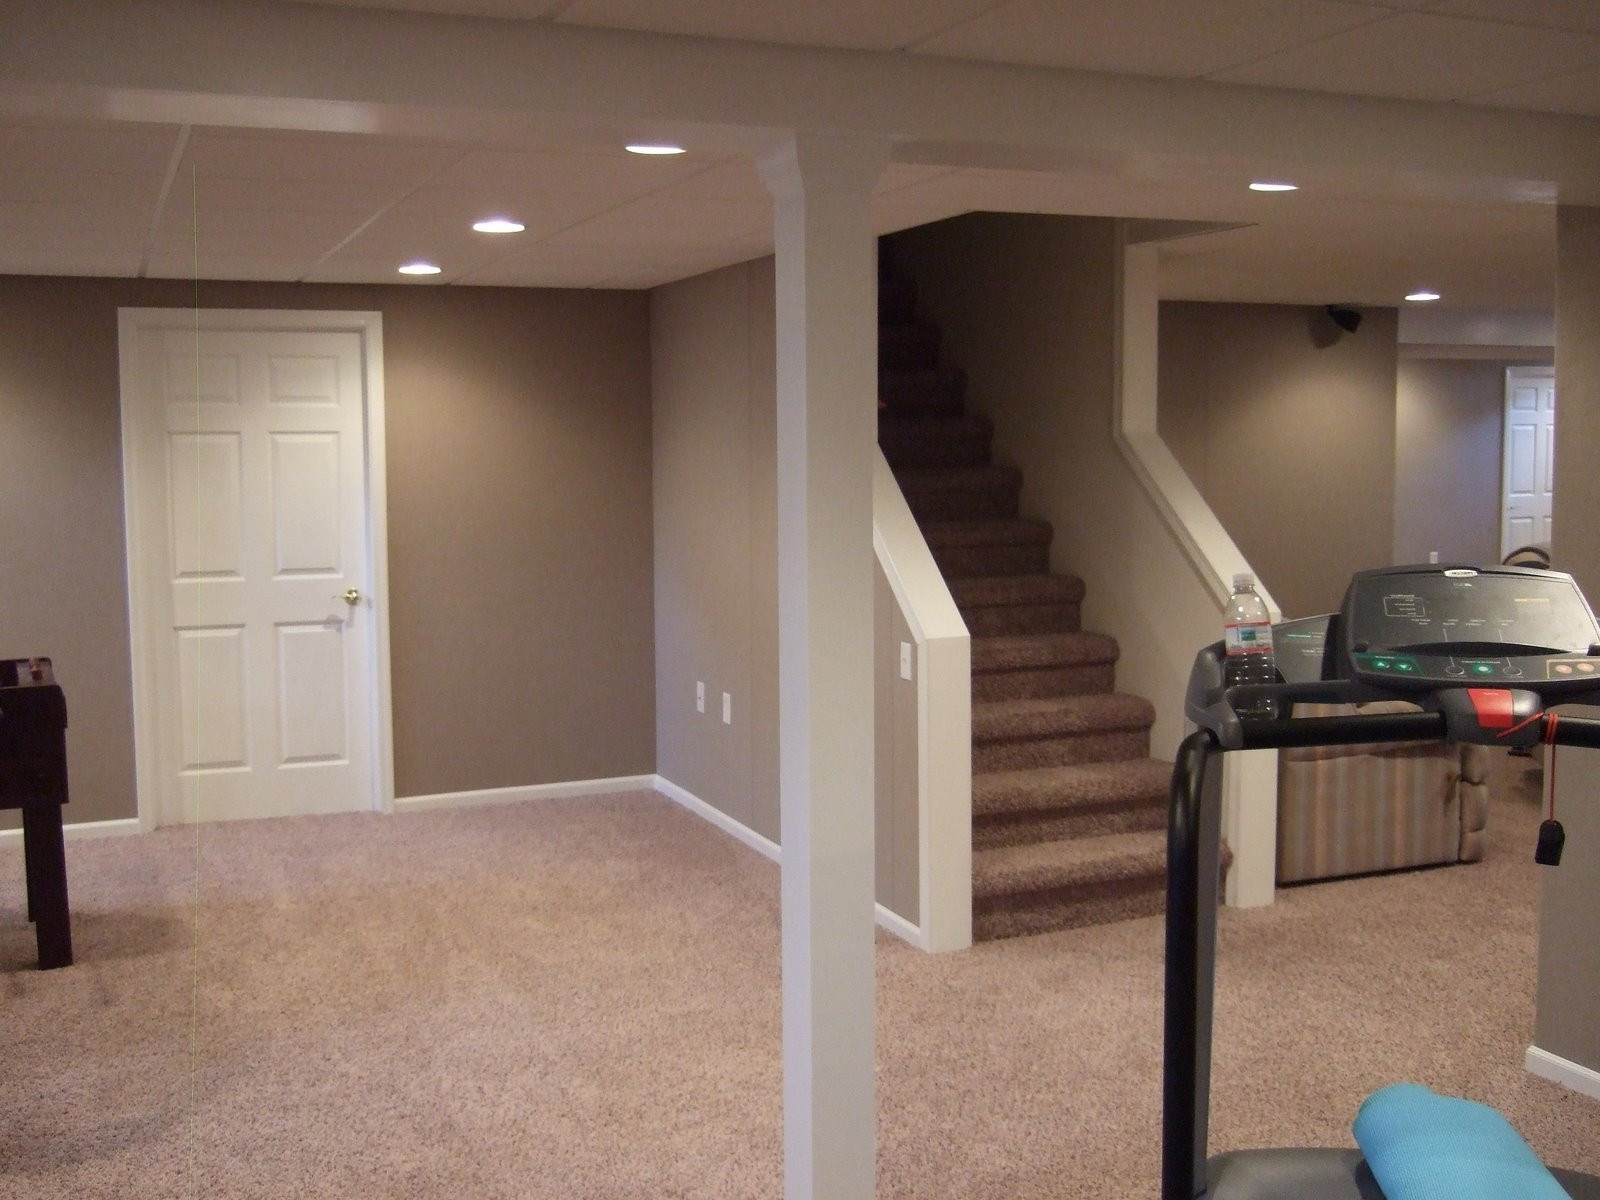 Best ideas about Finishing Basement Ideas Cheap . Save or Pin Finished Basement Ideas A Bud Home Design Bud Now.